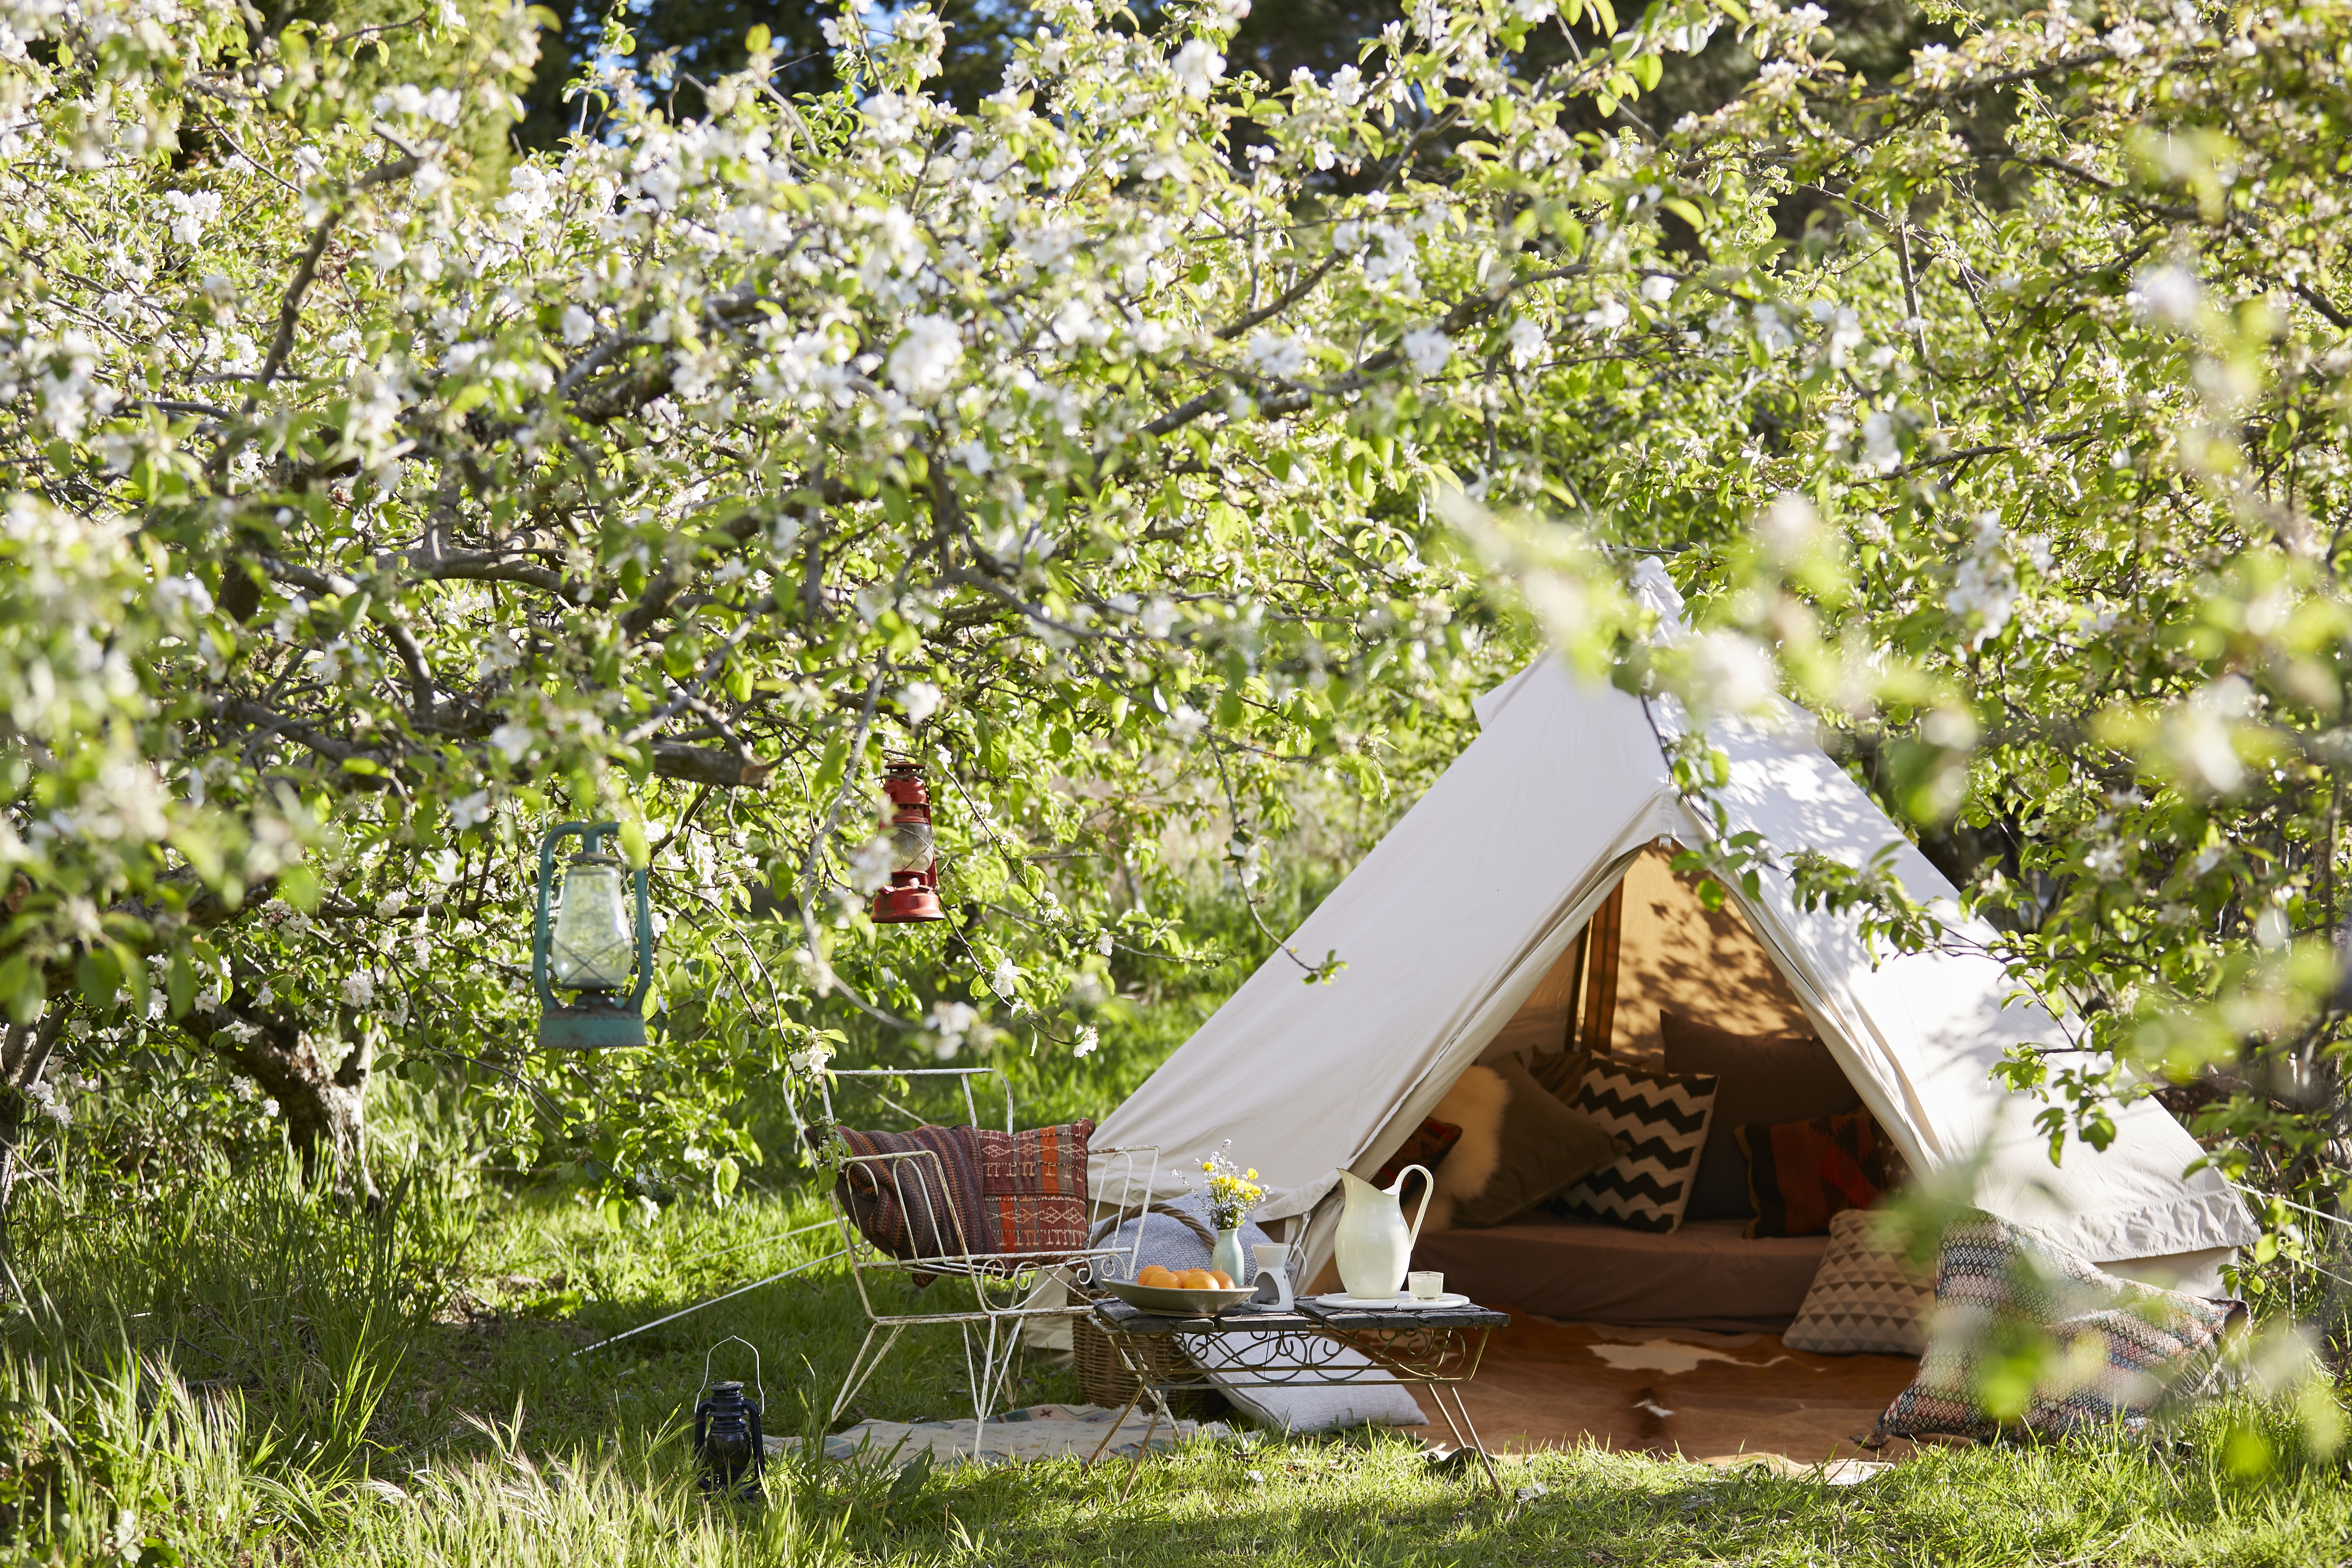 3m diameter Ultimate Bell Tent the ideal tent for the Australian Climate. Camping and Glamping Tent. Bohemian Camping Tent Teepee. Tipi. diameter Ultimate Bell Tent the ideal tent for the Australian Climate